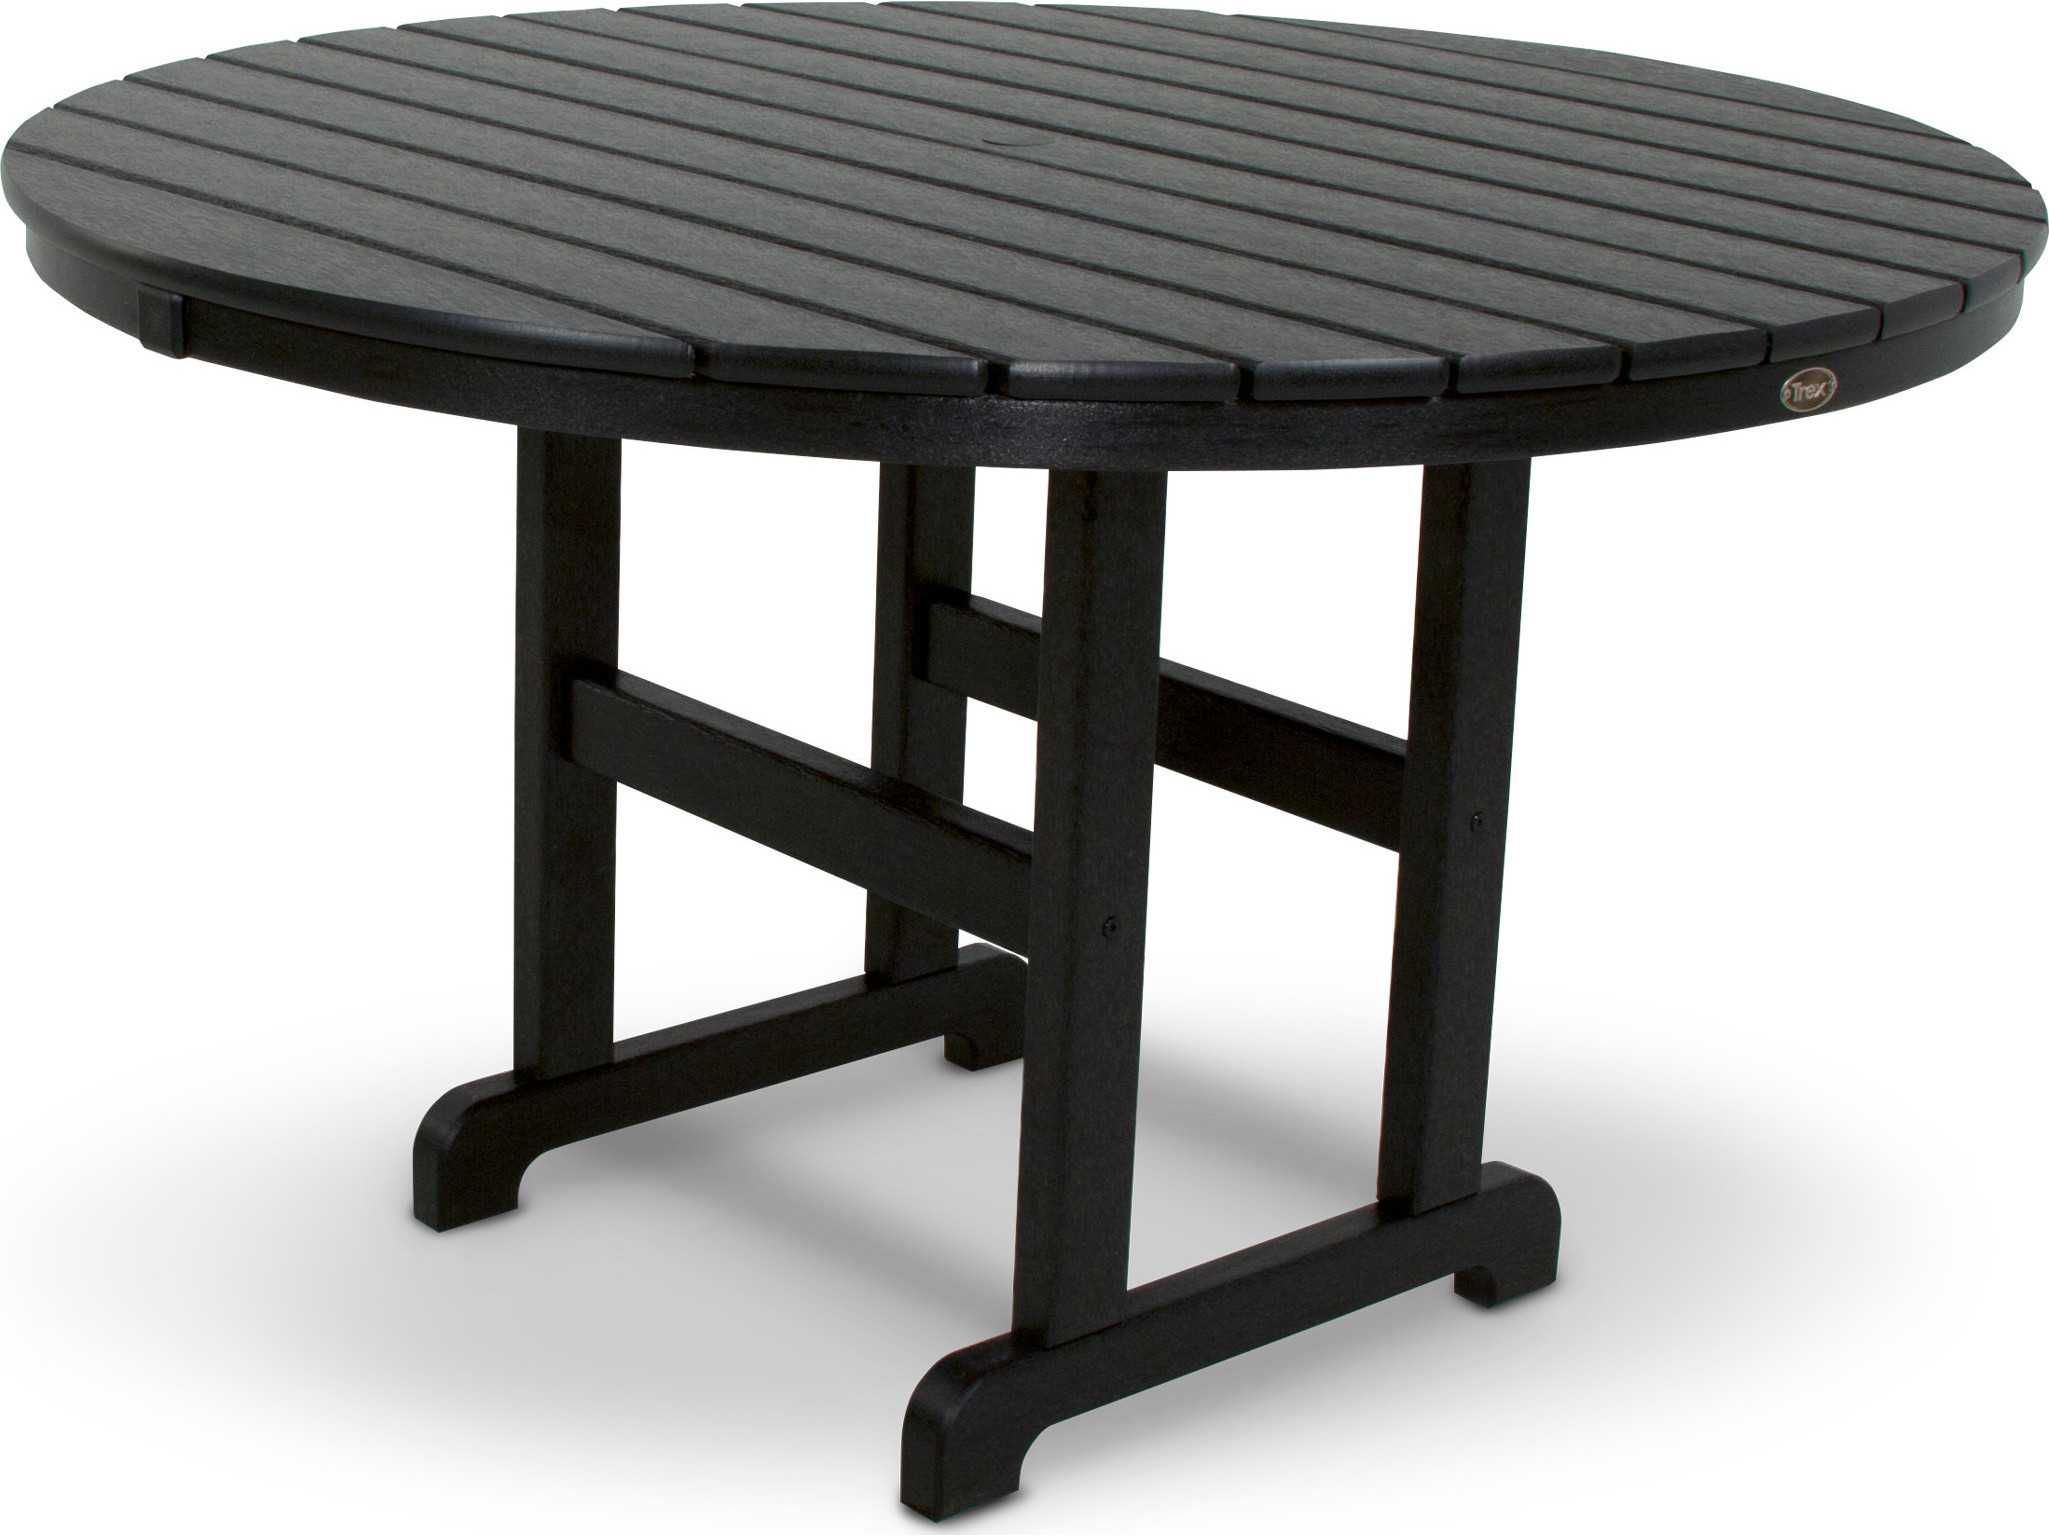 Trex monterey bay recycled plastic 48 round dining table for Pvc patio table